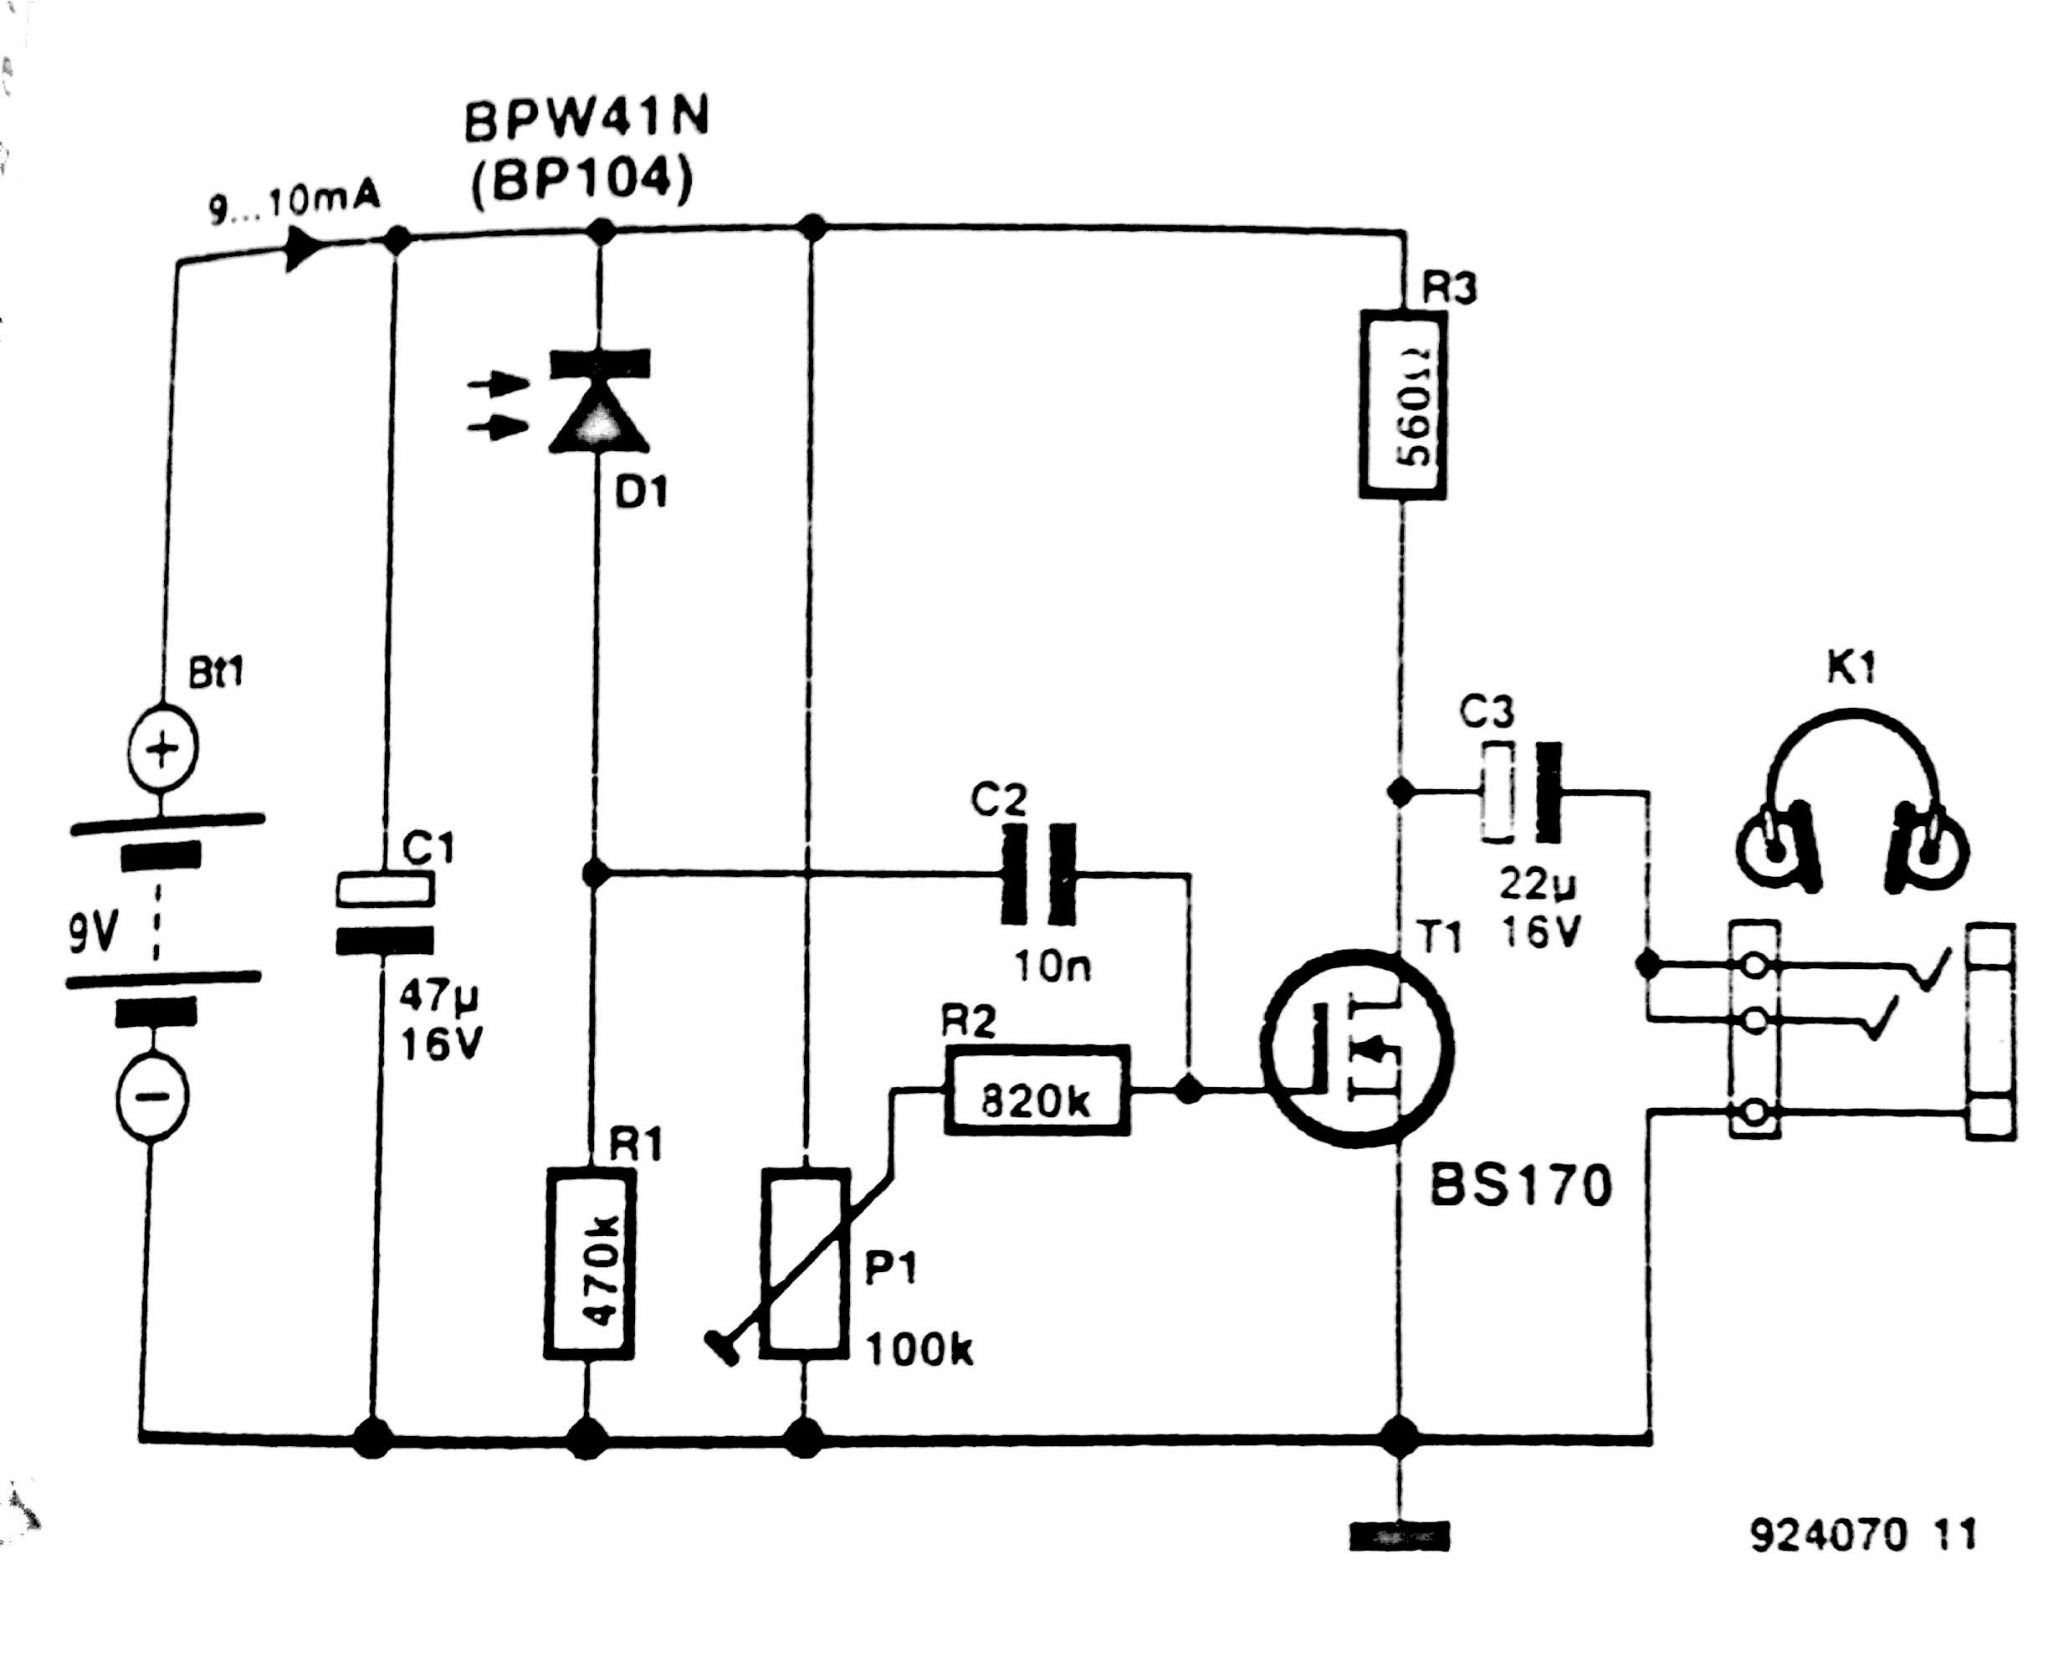 Infrared Headphone Receiver Circuit Diagram How To Make A Sixtiesstyle 40w Audio Amplifier